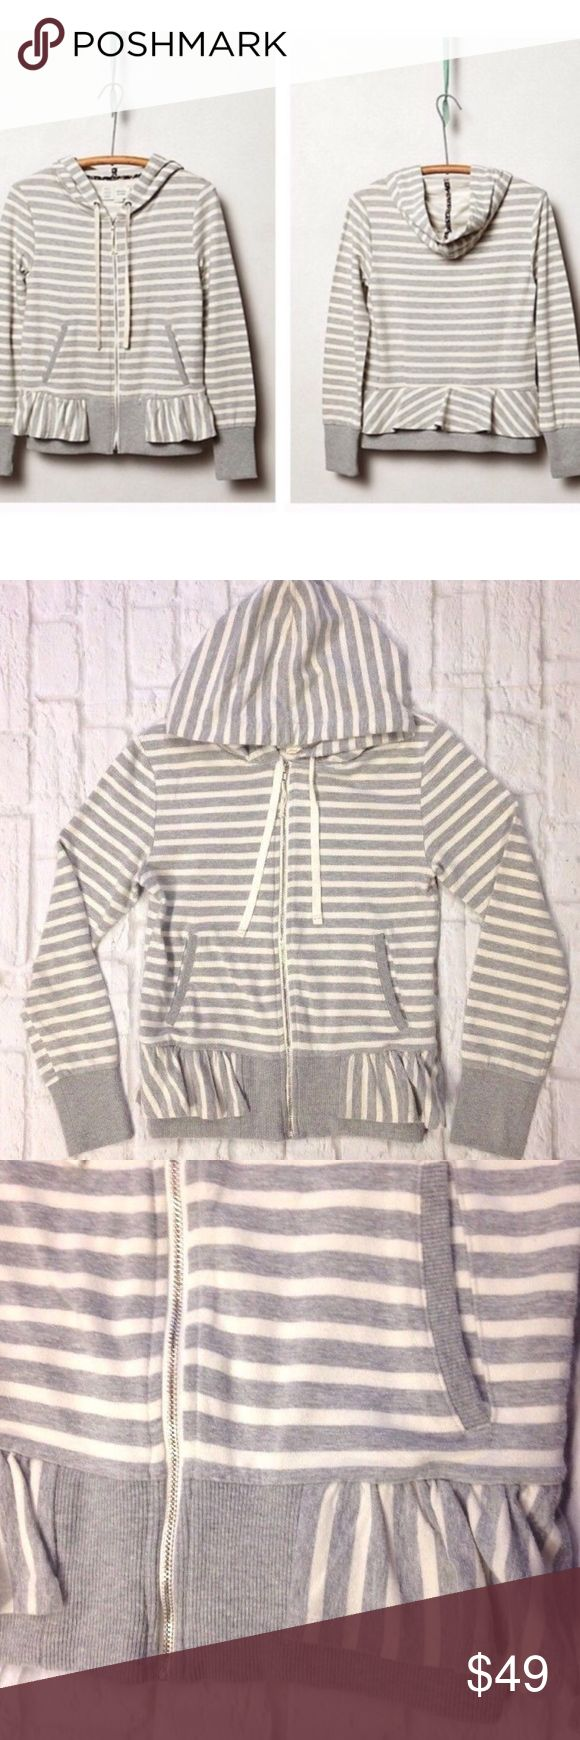 Anthropologie Saturday Sunday Peplum zip up hoodie Beautiful Anthropologie, Saturday Sunday Peplum gray striped zip-up hoodie Women size Small Excellent condition with light wear It's too small for me or else I would live in it...too cute! Anthropologie Tops Sweatshirts & Hoodies